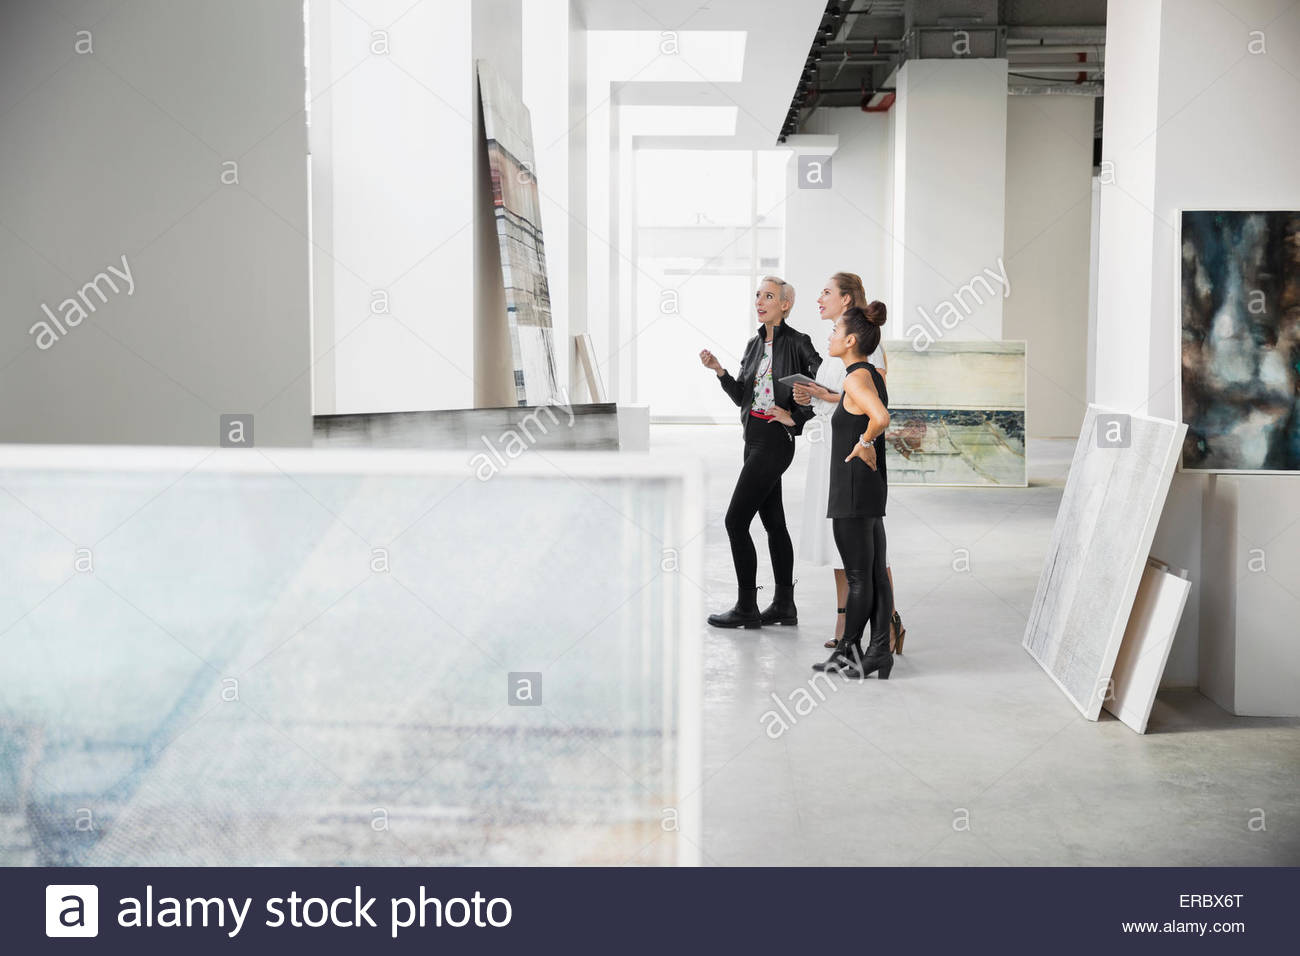 Artist and art dealers discussing paintings art gallery - Stock Image